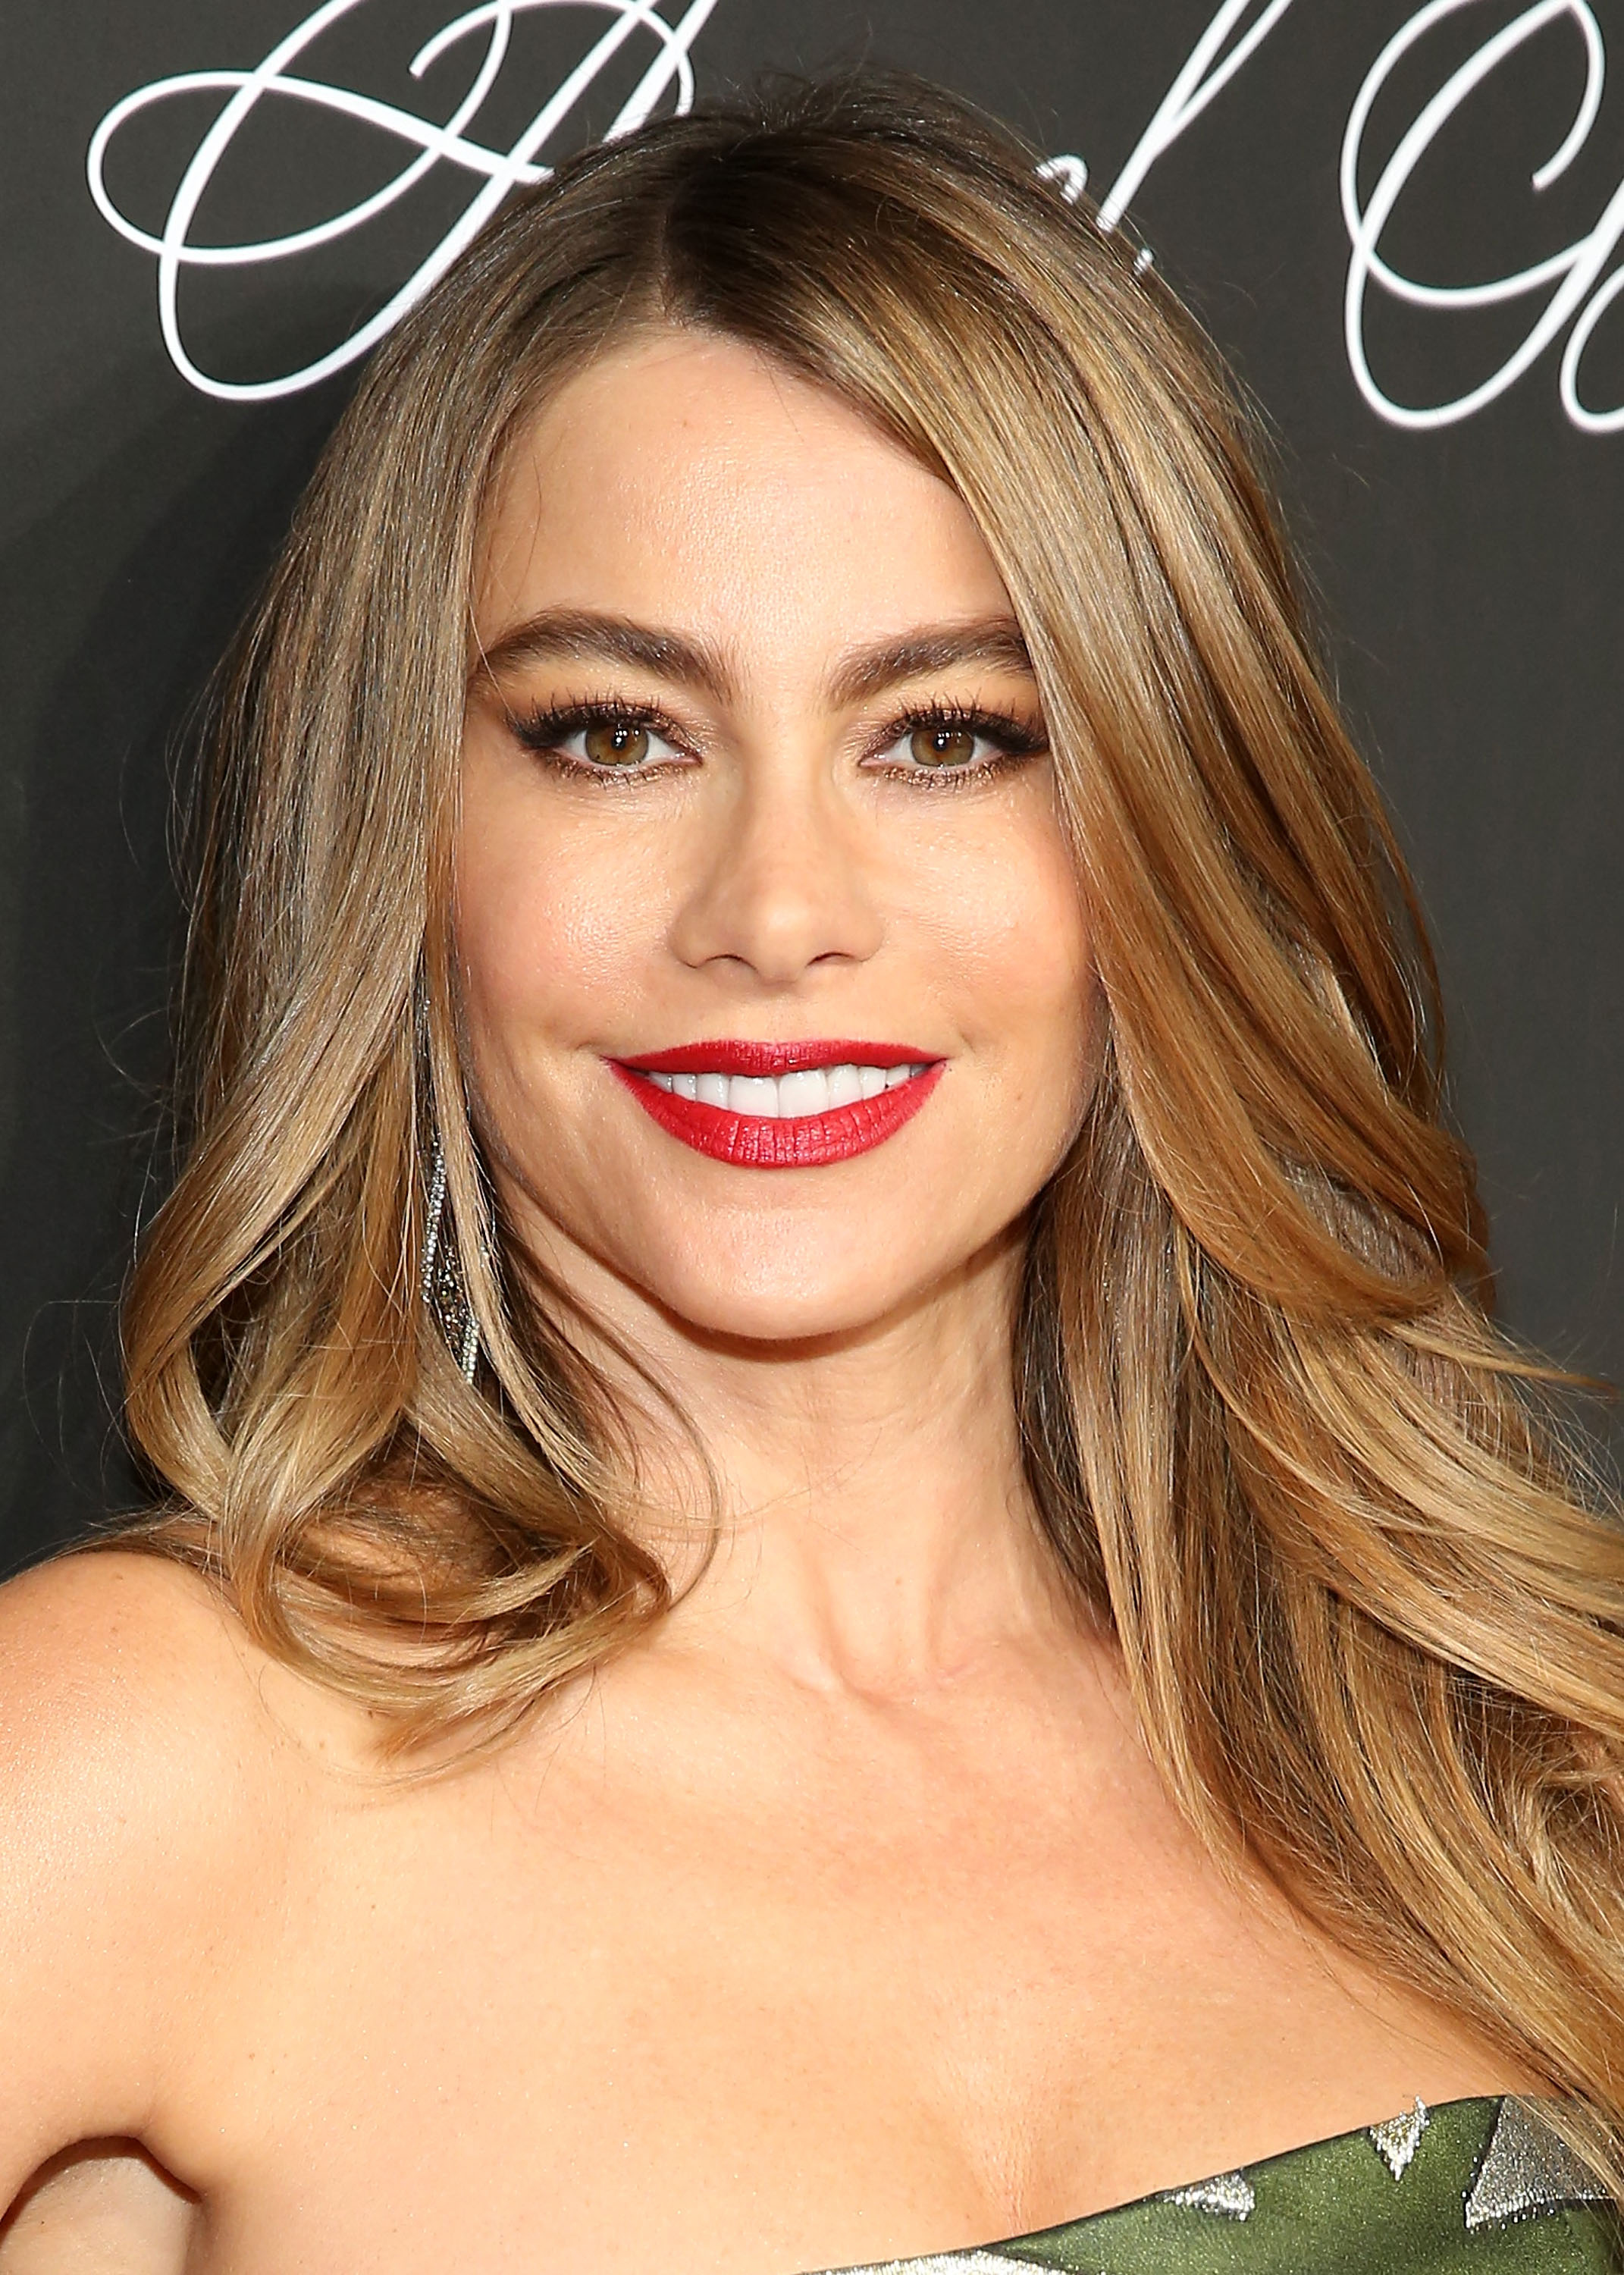 Actress Sofia Vergara attends Angel Ball 2014 at Cipriani Wall Street on Oct. 20, 2014 in New York City.